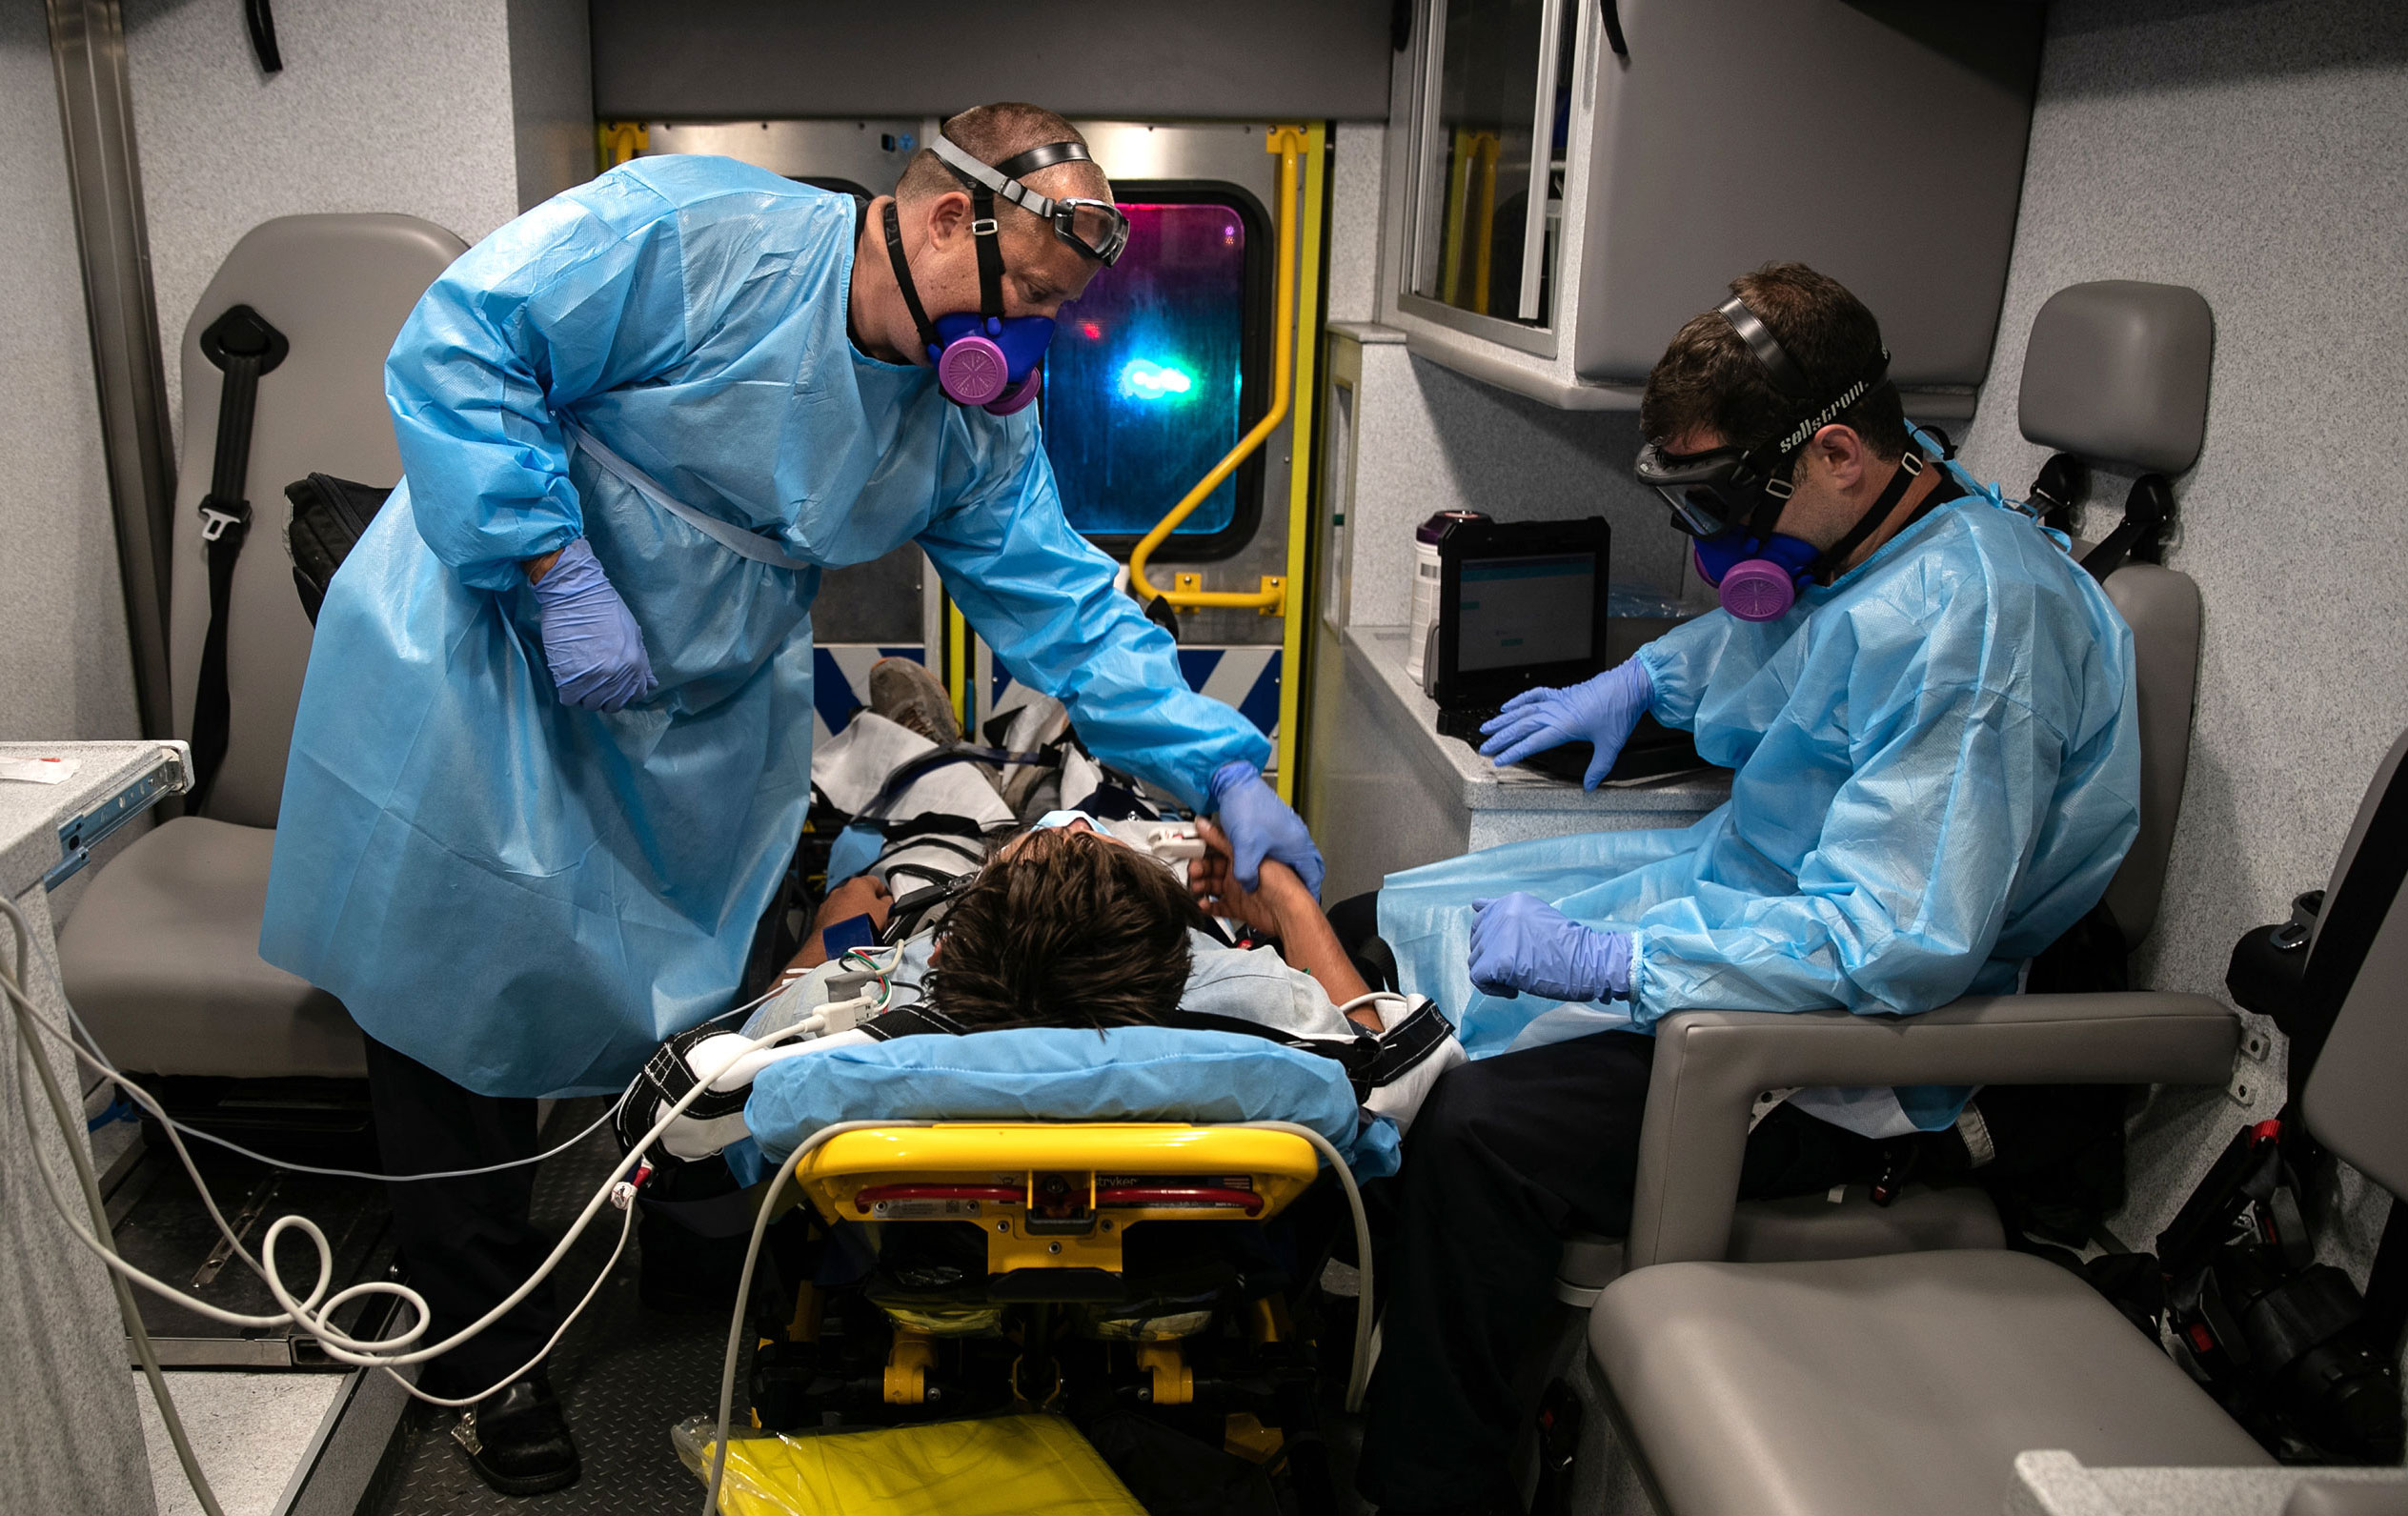 Medics with Austin-Travis County EMS transport a patient to a hospital on August 4 in Austin, Texas.